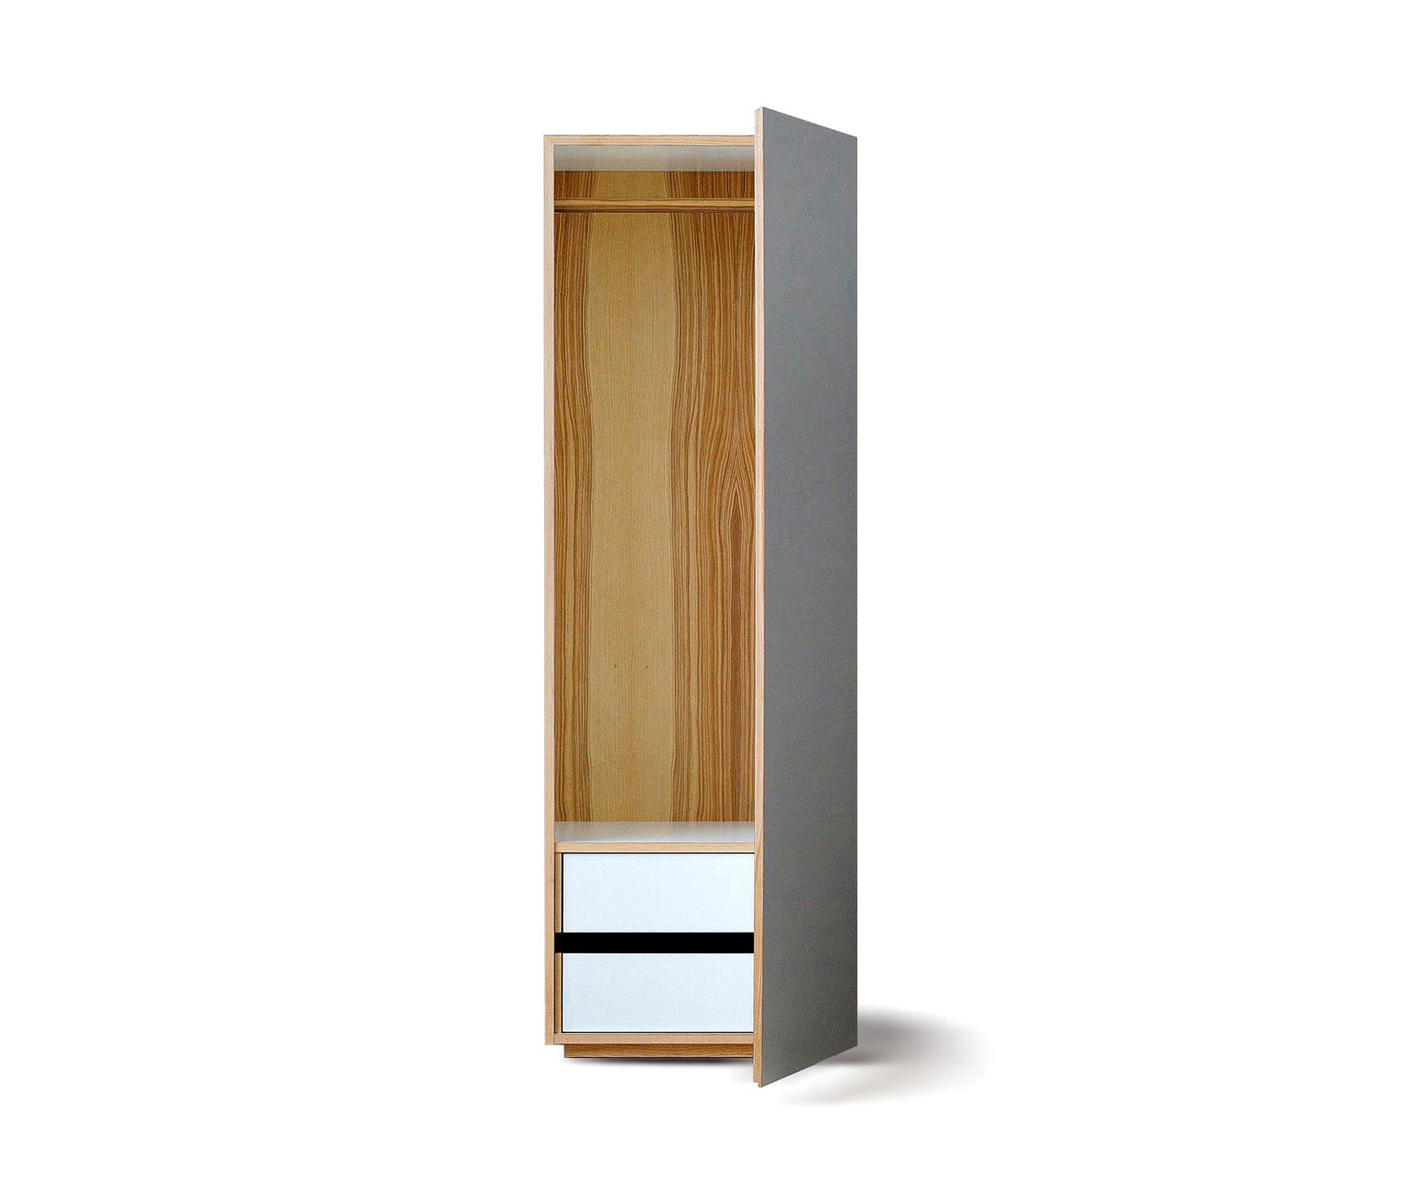 WARDROBE - Schränke von MINT Furniture | Architonic